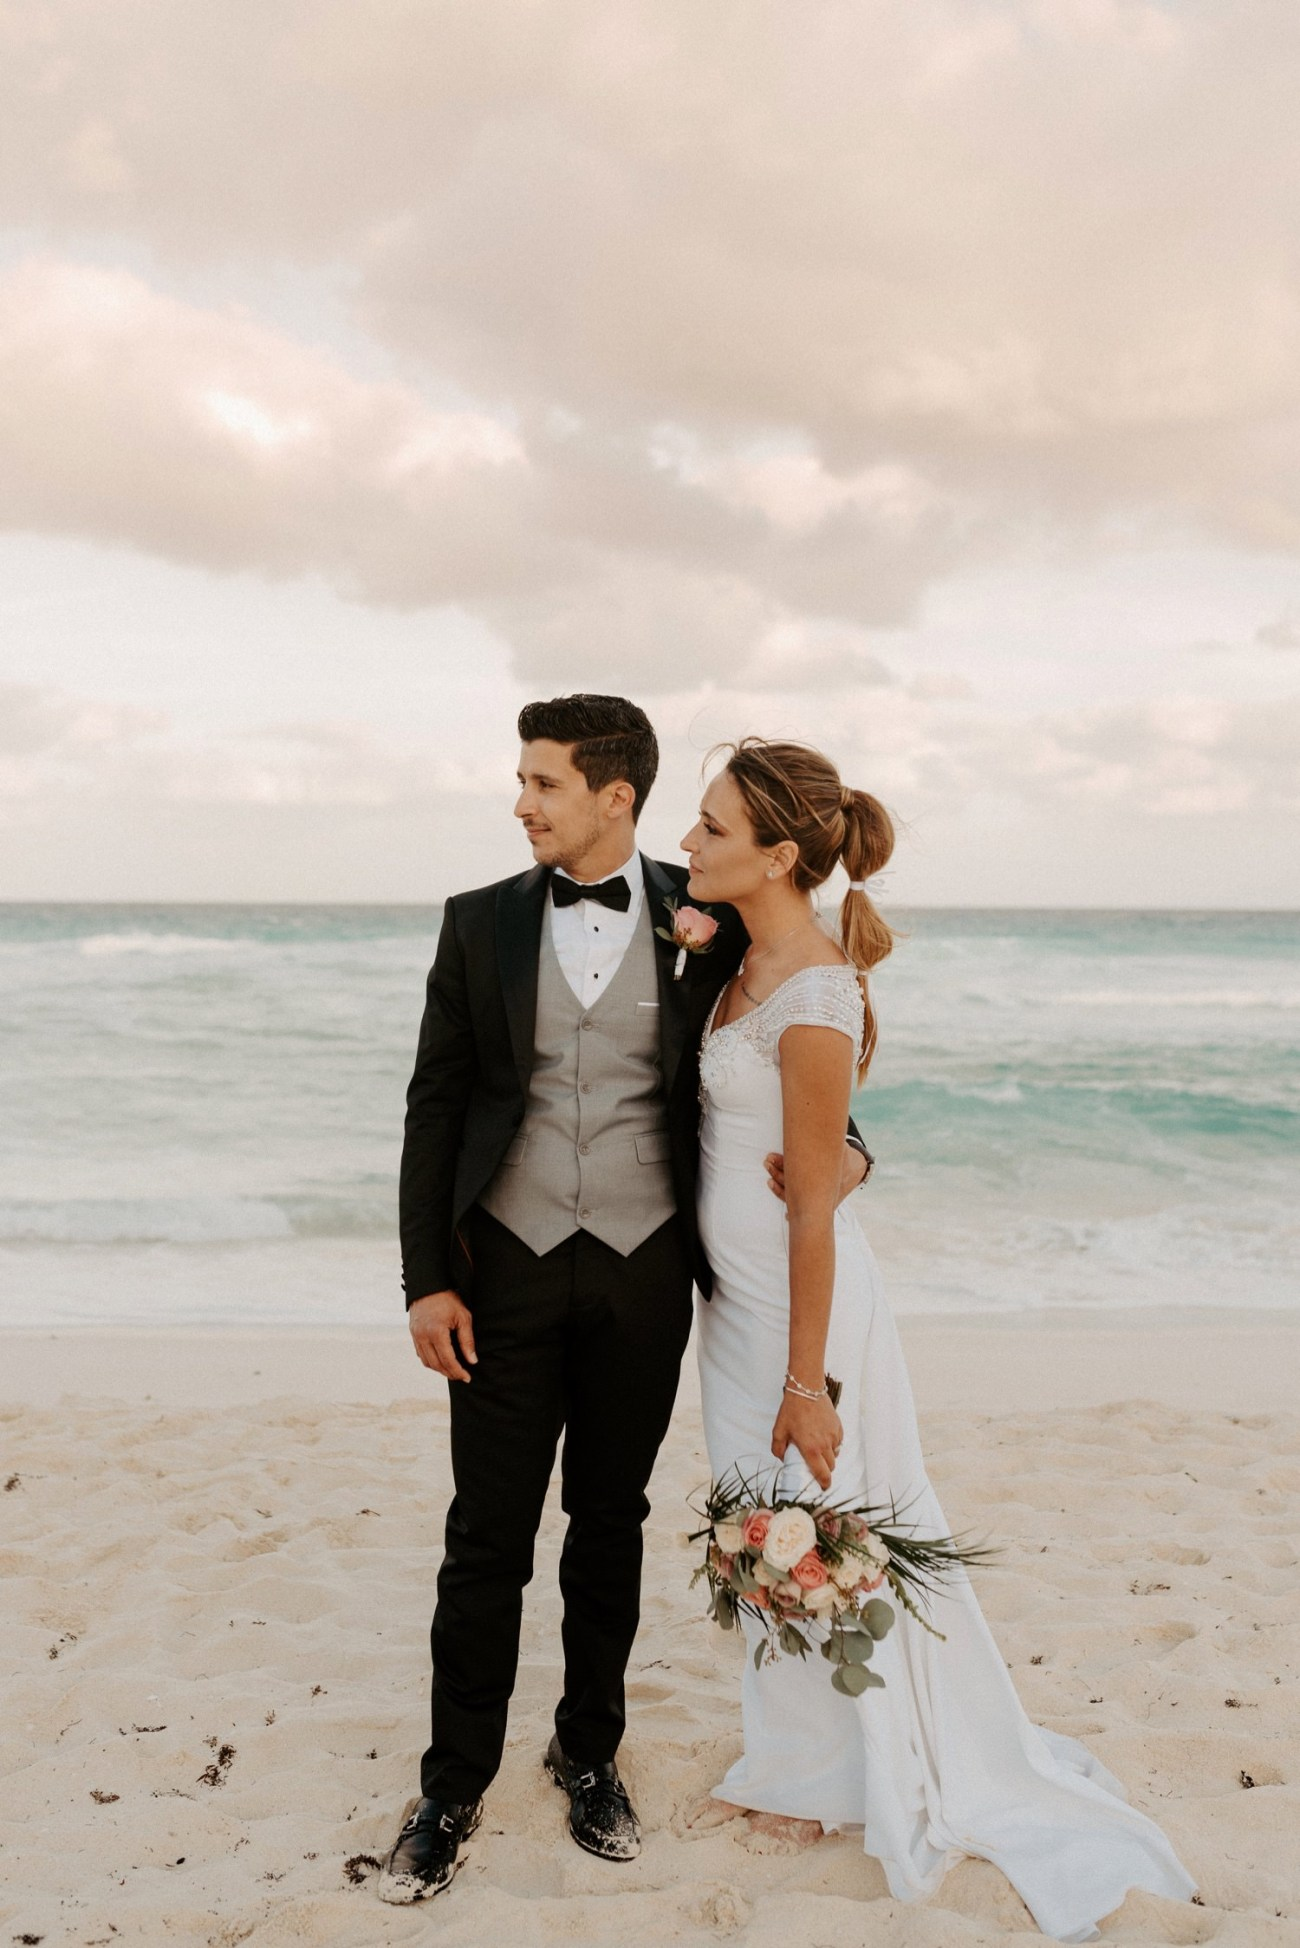 Cancun Destination Wedding Mexico Tulum Wedding Photographer Anais Possamai Photography 048